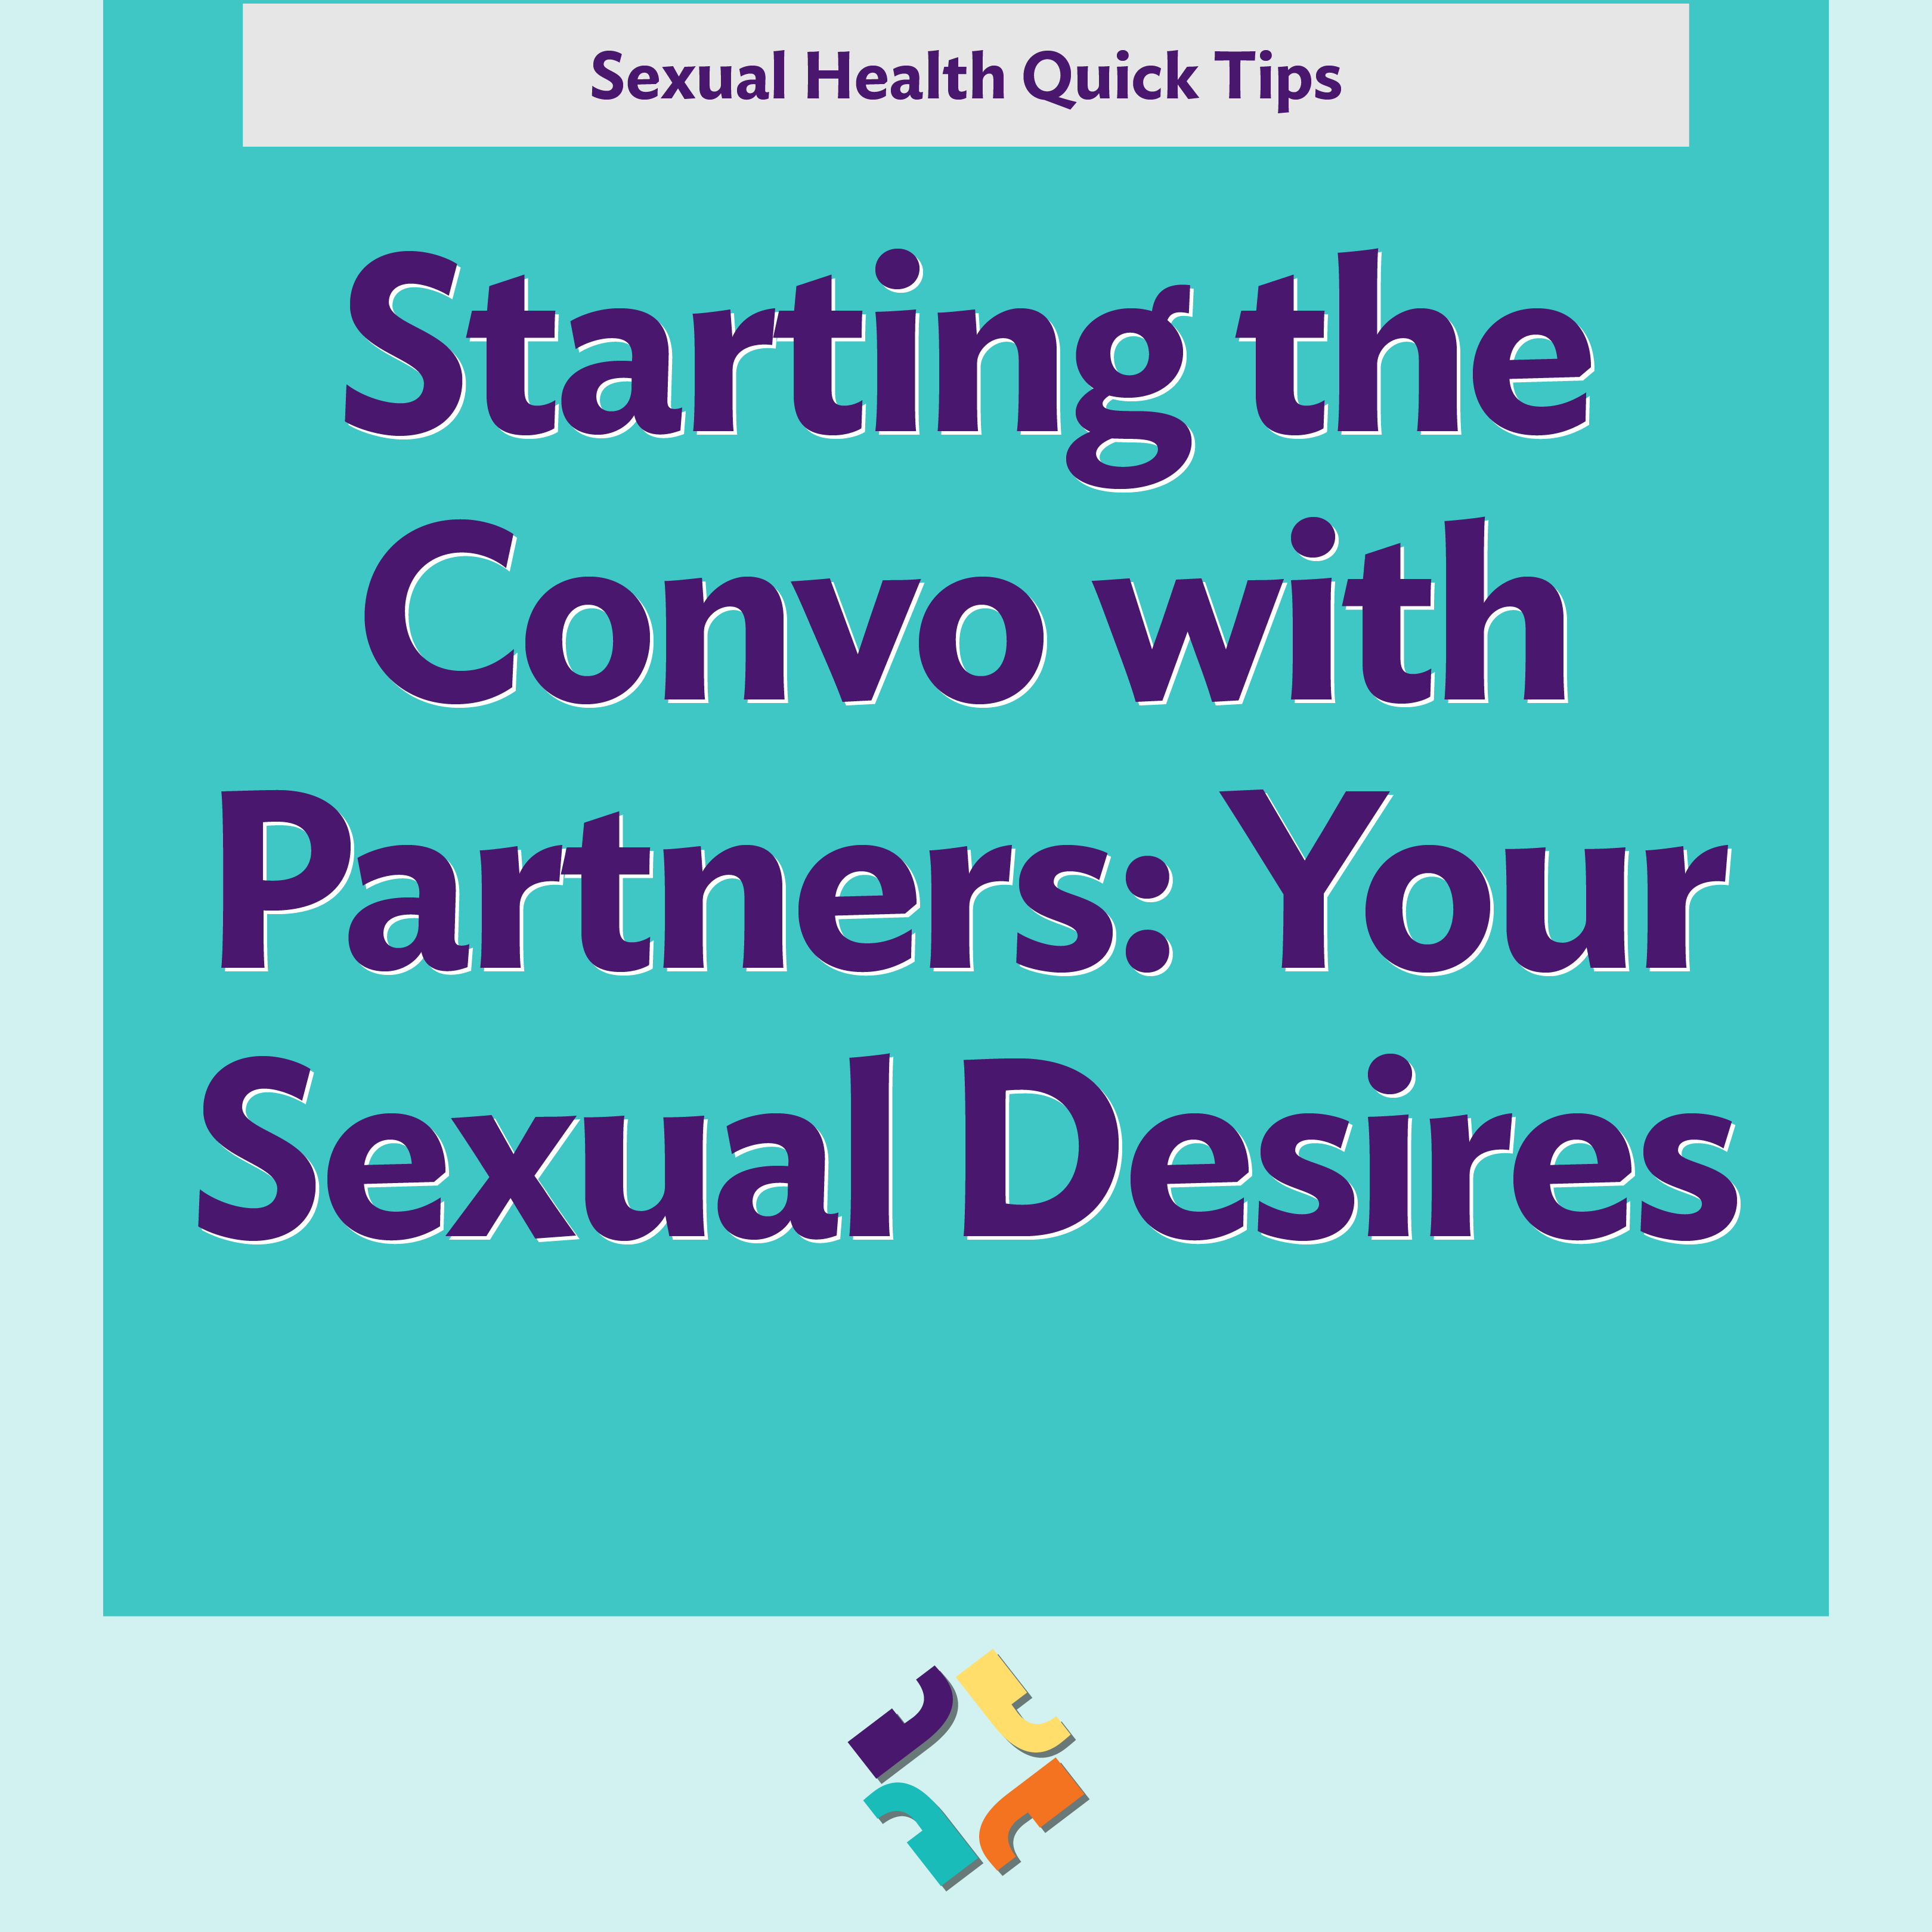 Starting the Convo with Partners - Your Sexual Desires